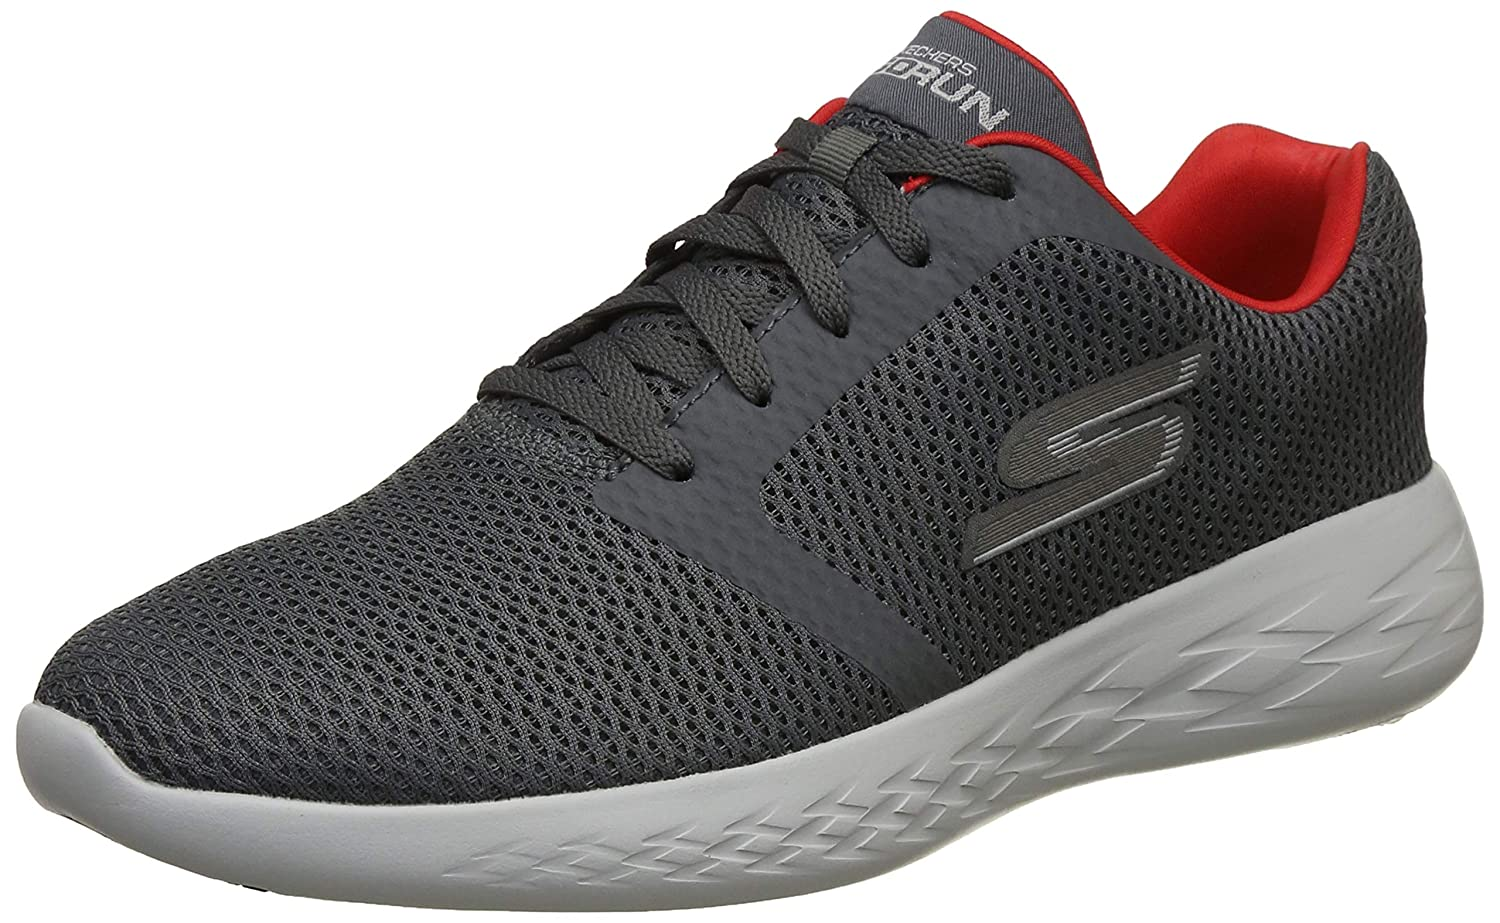 Skechers 55061-CCRD Best Branded Running Shoes for Men in India 2019